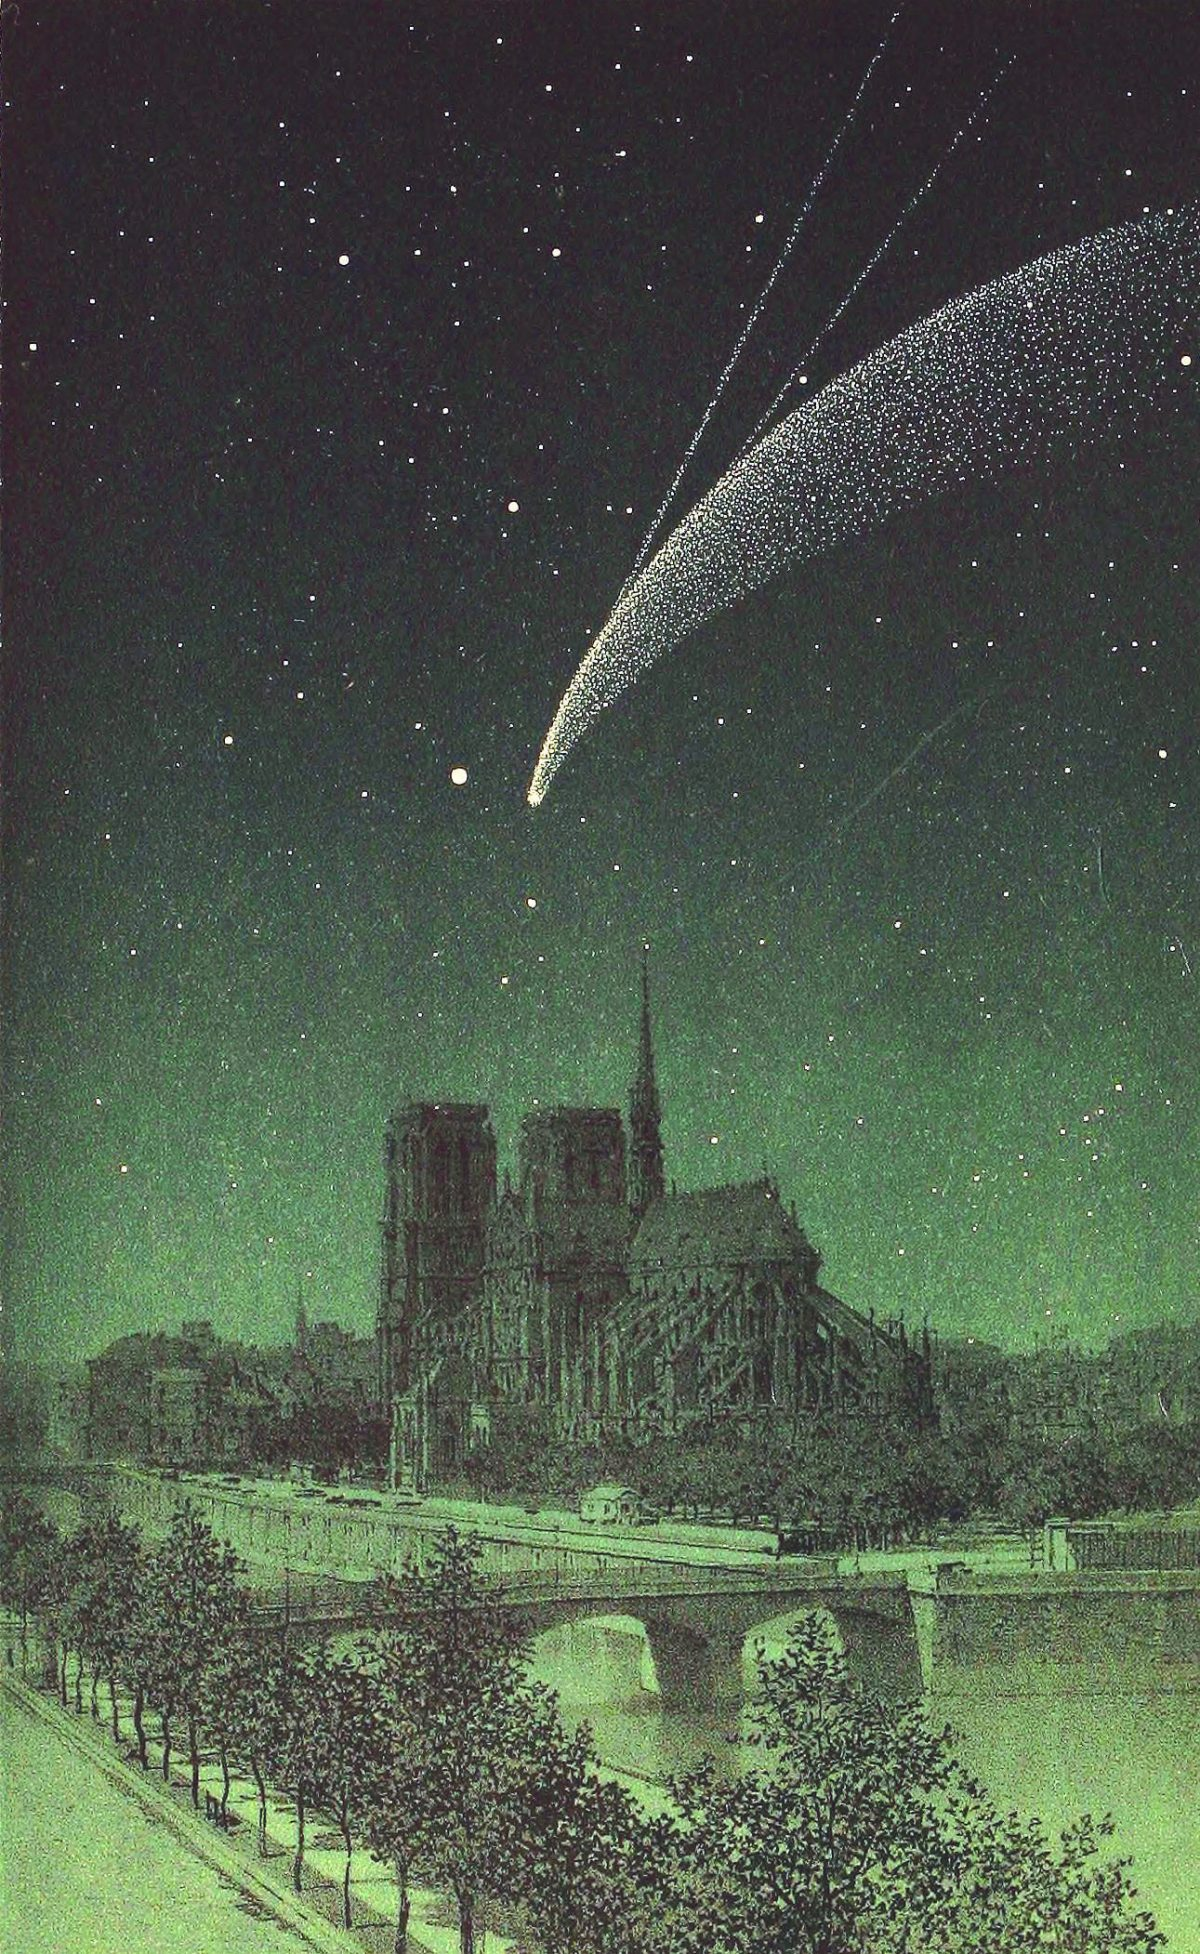 Comet-Donati-above-Notre-Dame.-Drawing-published-in-The-sky-of-Amédée-Guillemin-fifth-edition-1877-Hachette.jpg